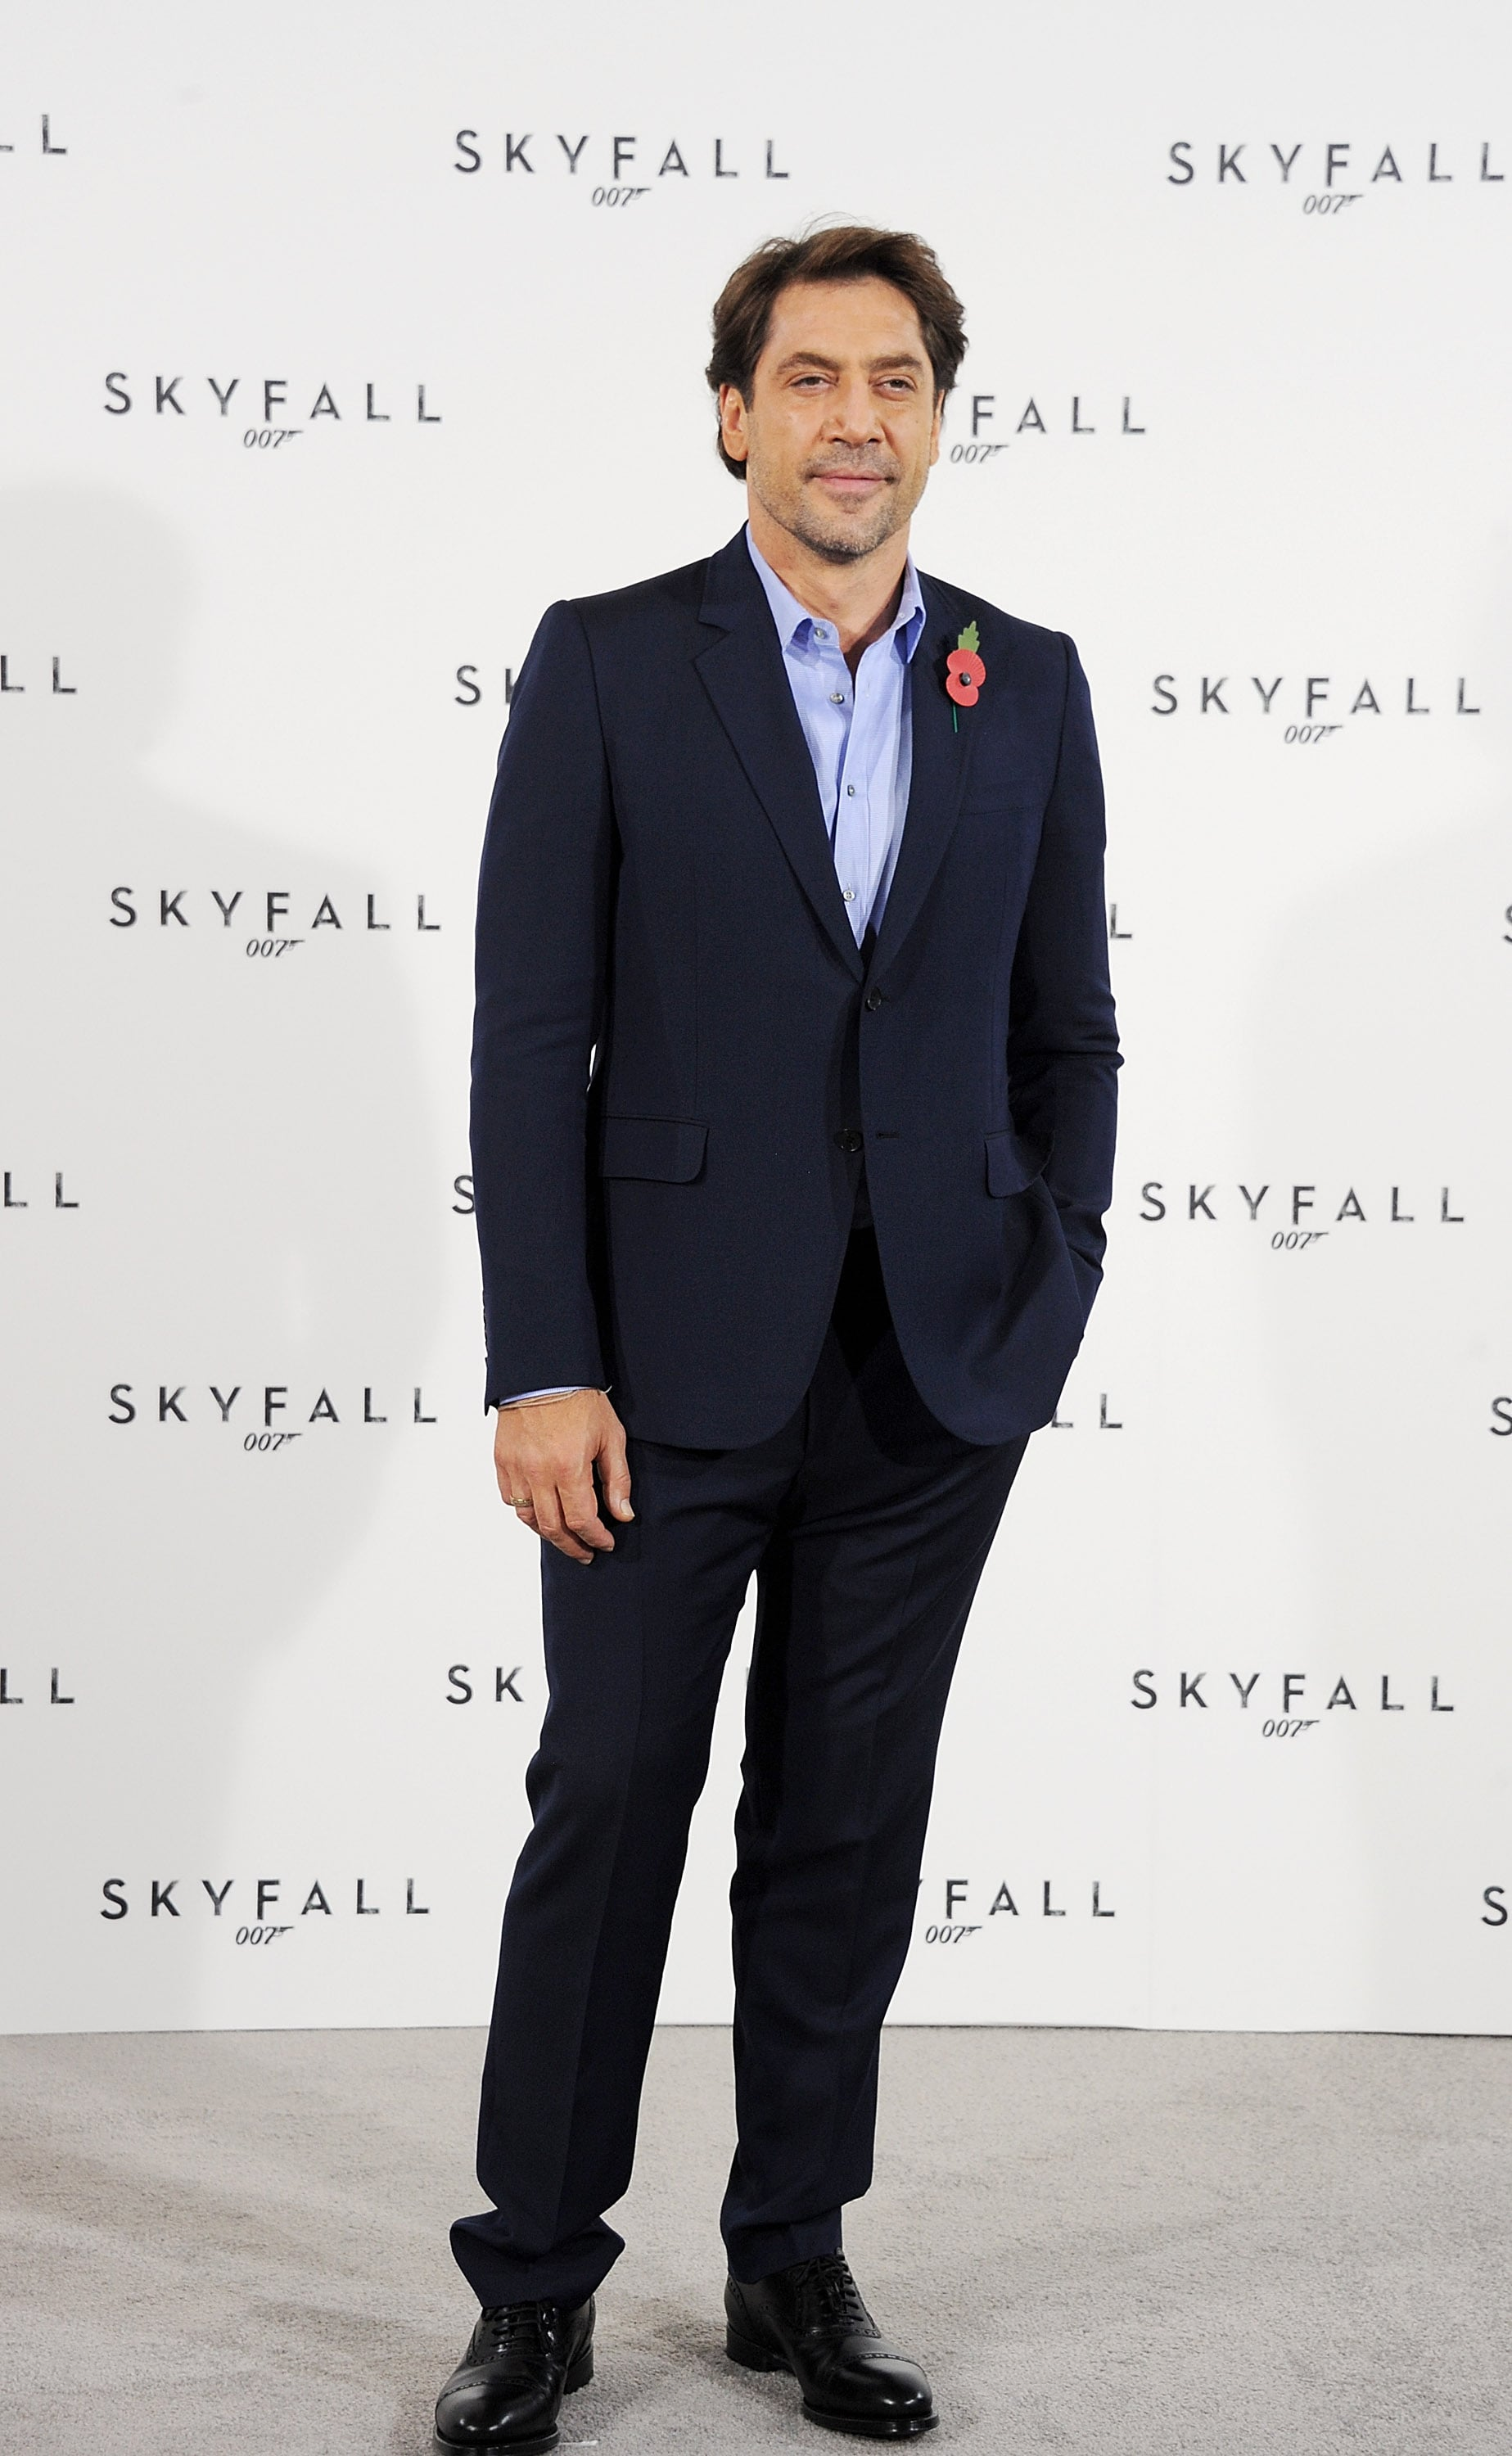 Javier Bardem was in London for Skyfall.